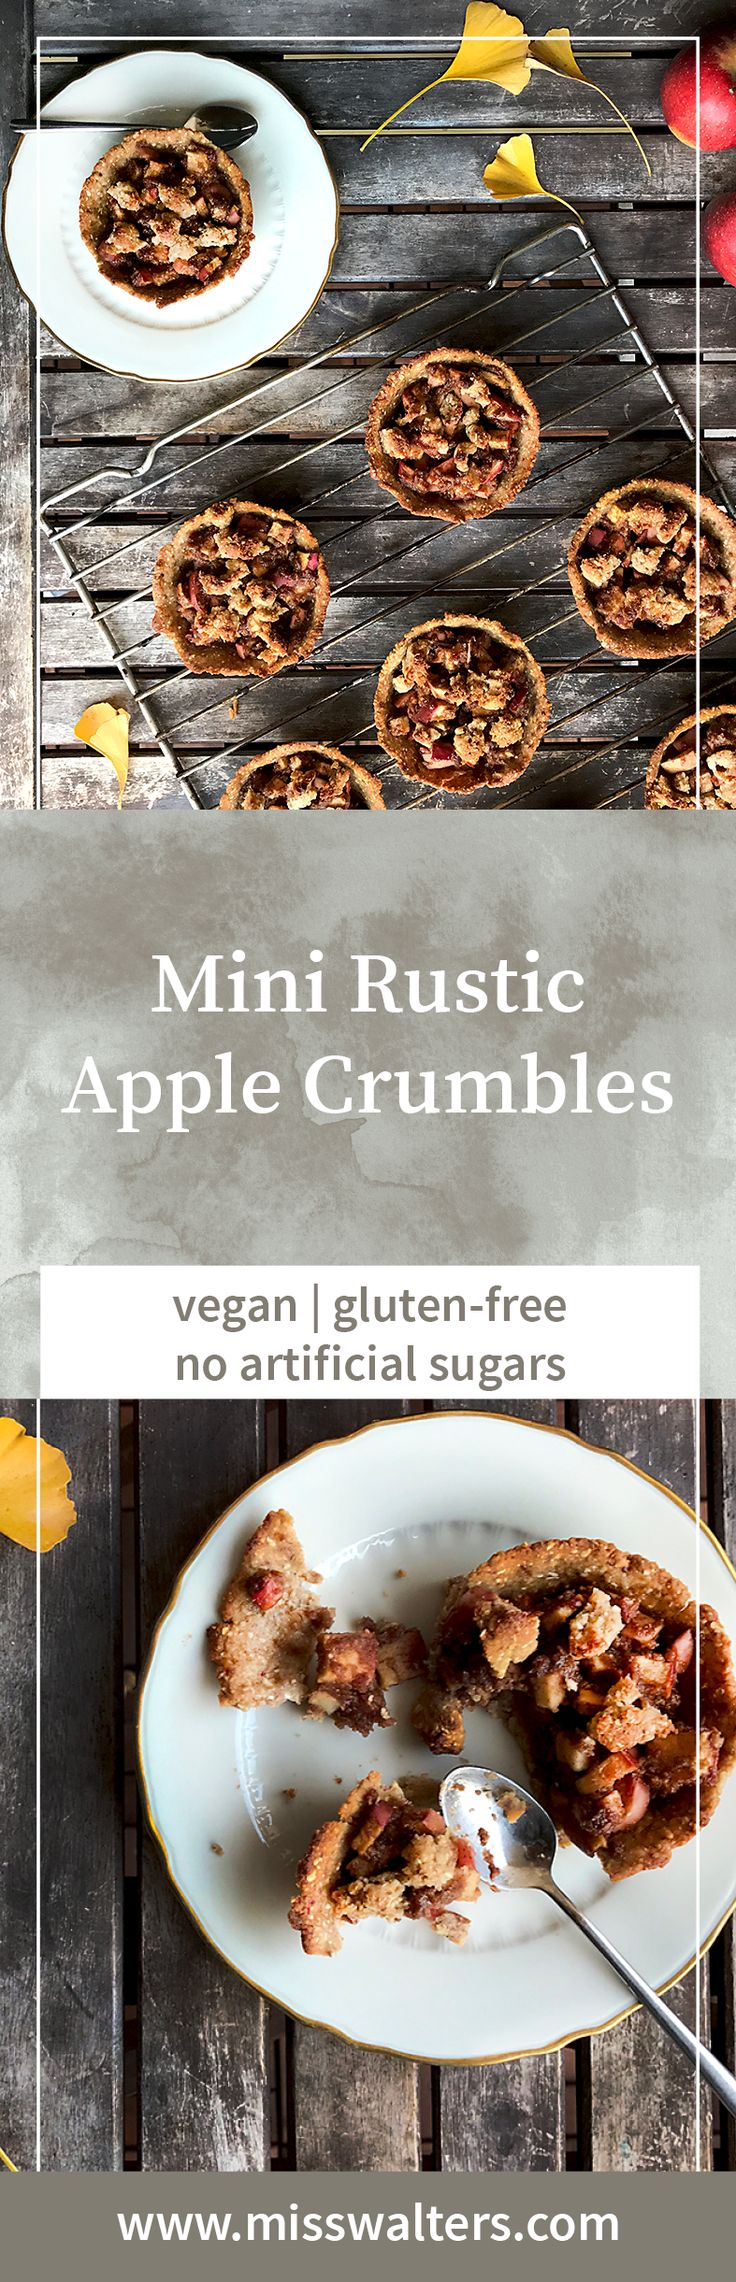 An apple a day keeps the doc away. Especially true for these Mini Rustic Apple Crumbles.